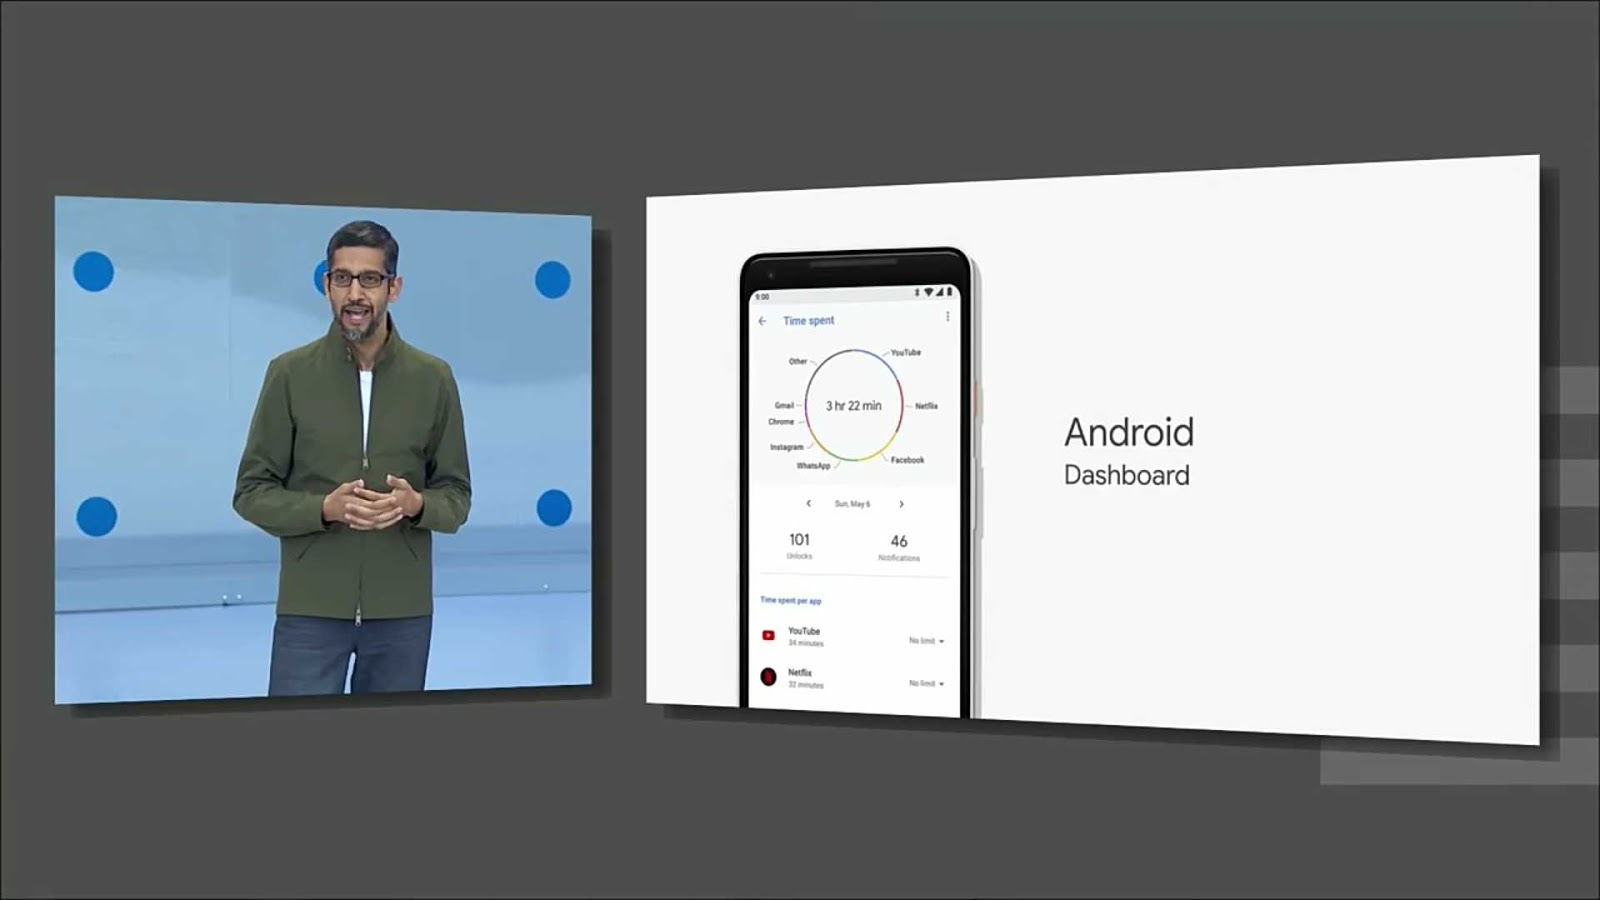 A new android dashboard